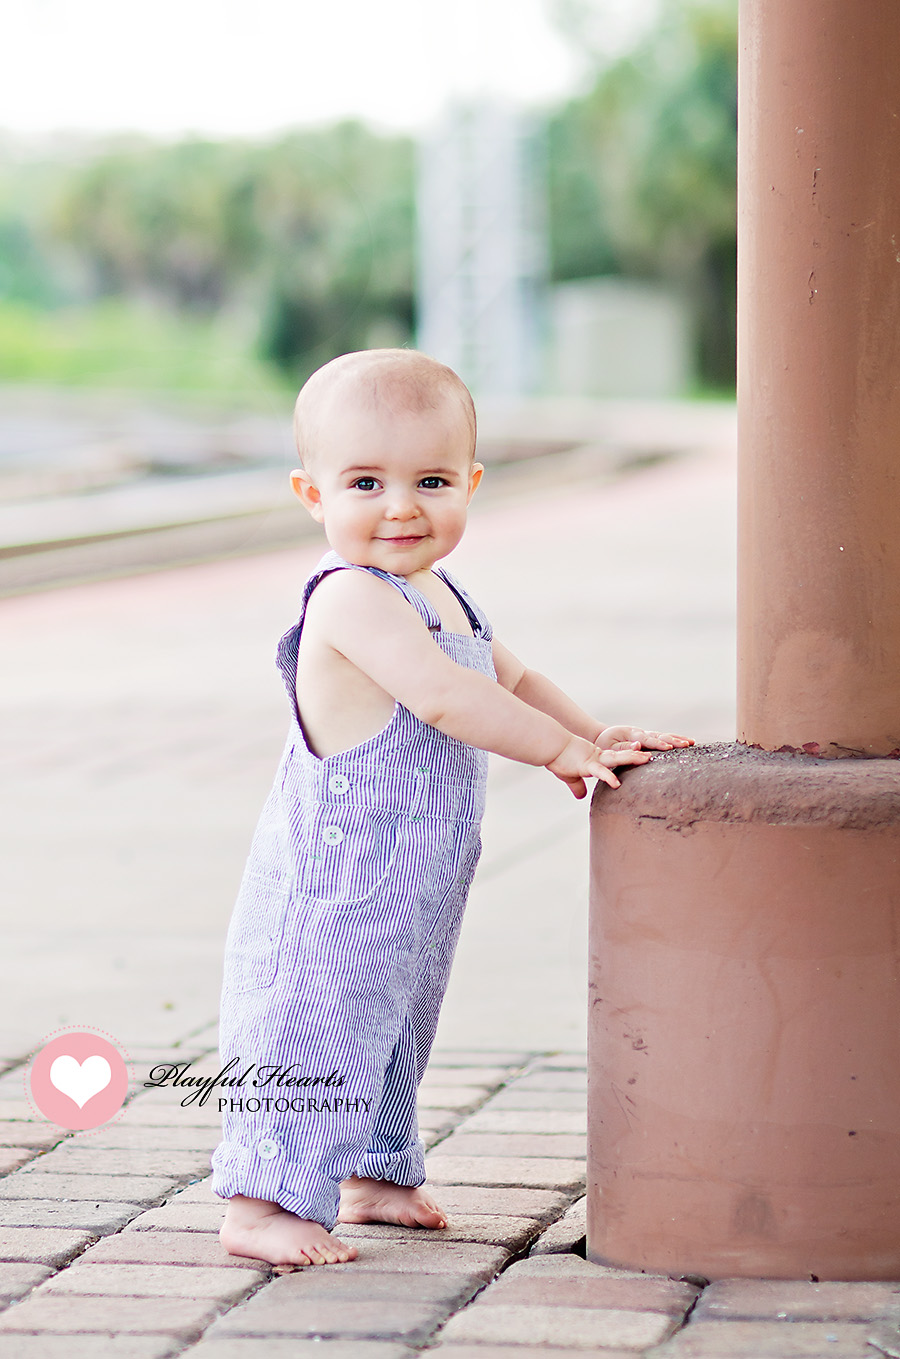 Toddler Photo Shoot at the Train Tracks by Playful Hearts Photography